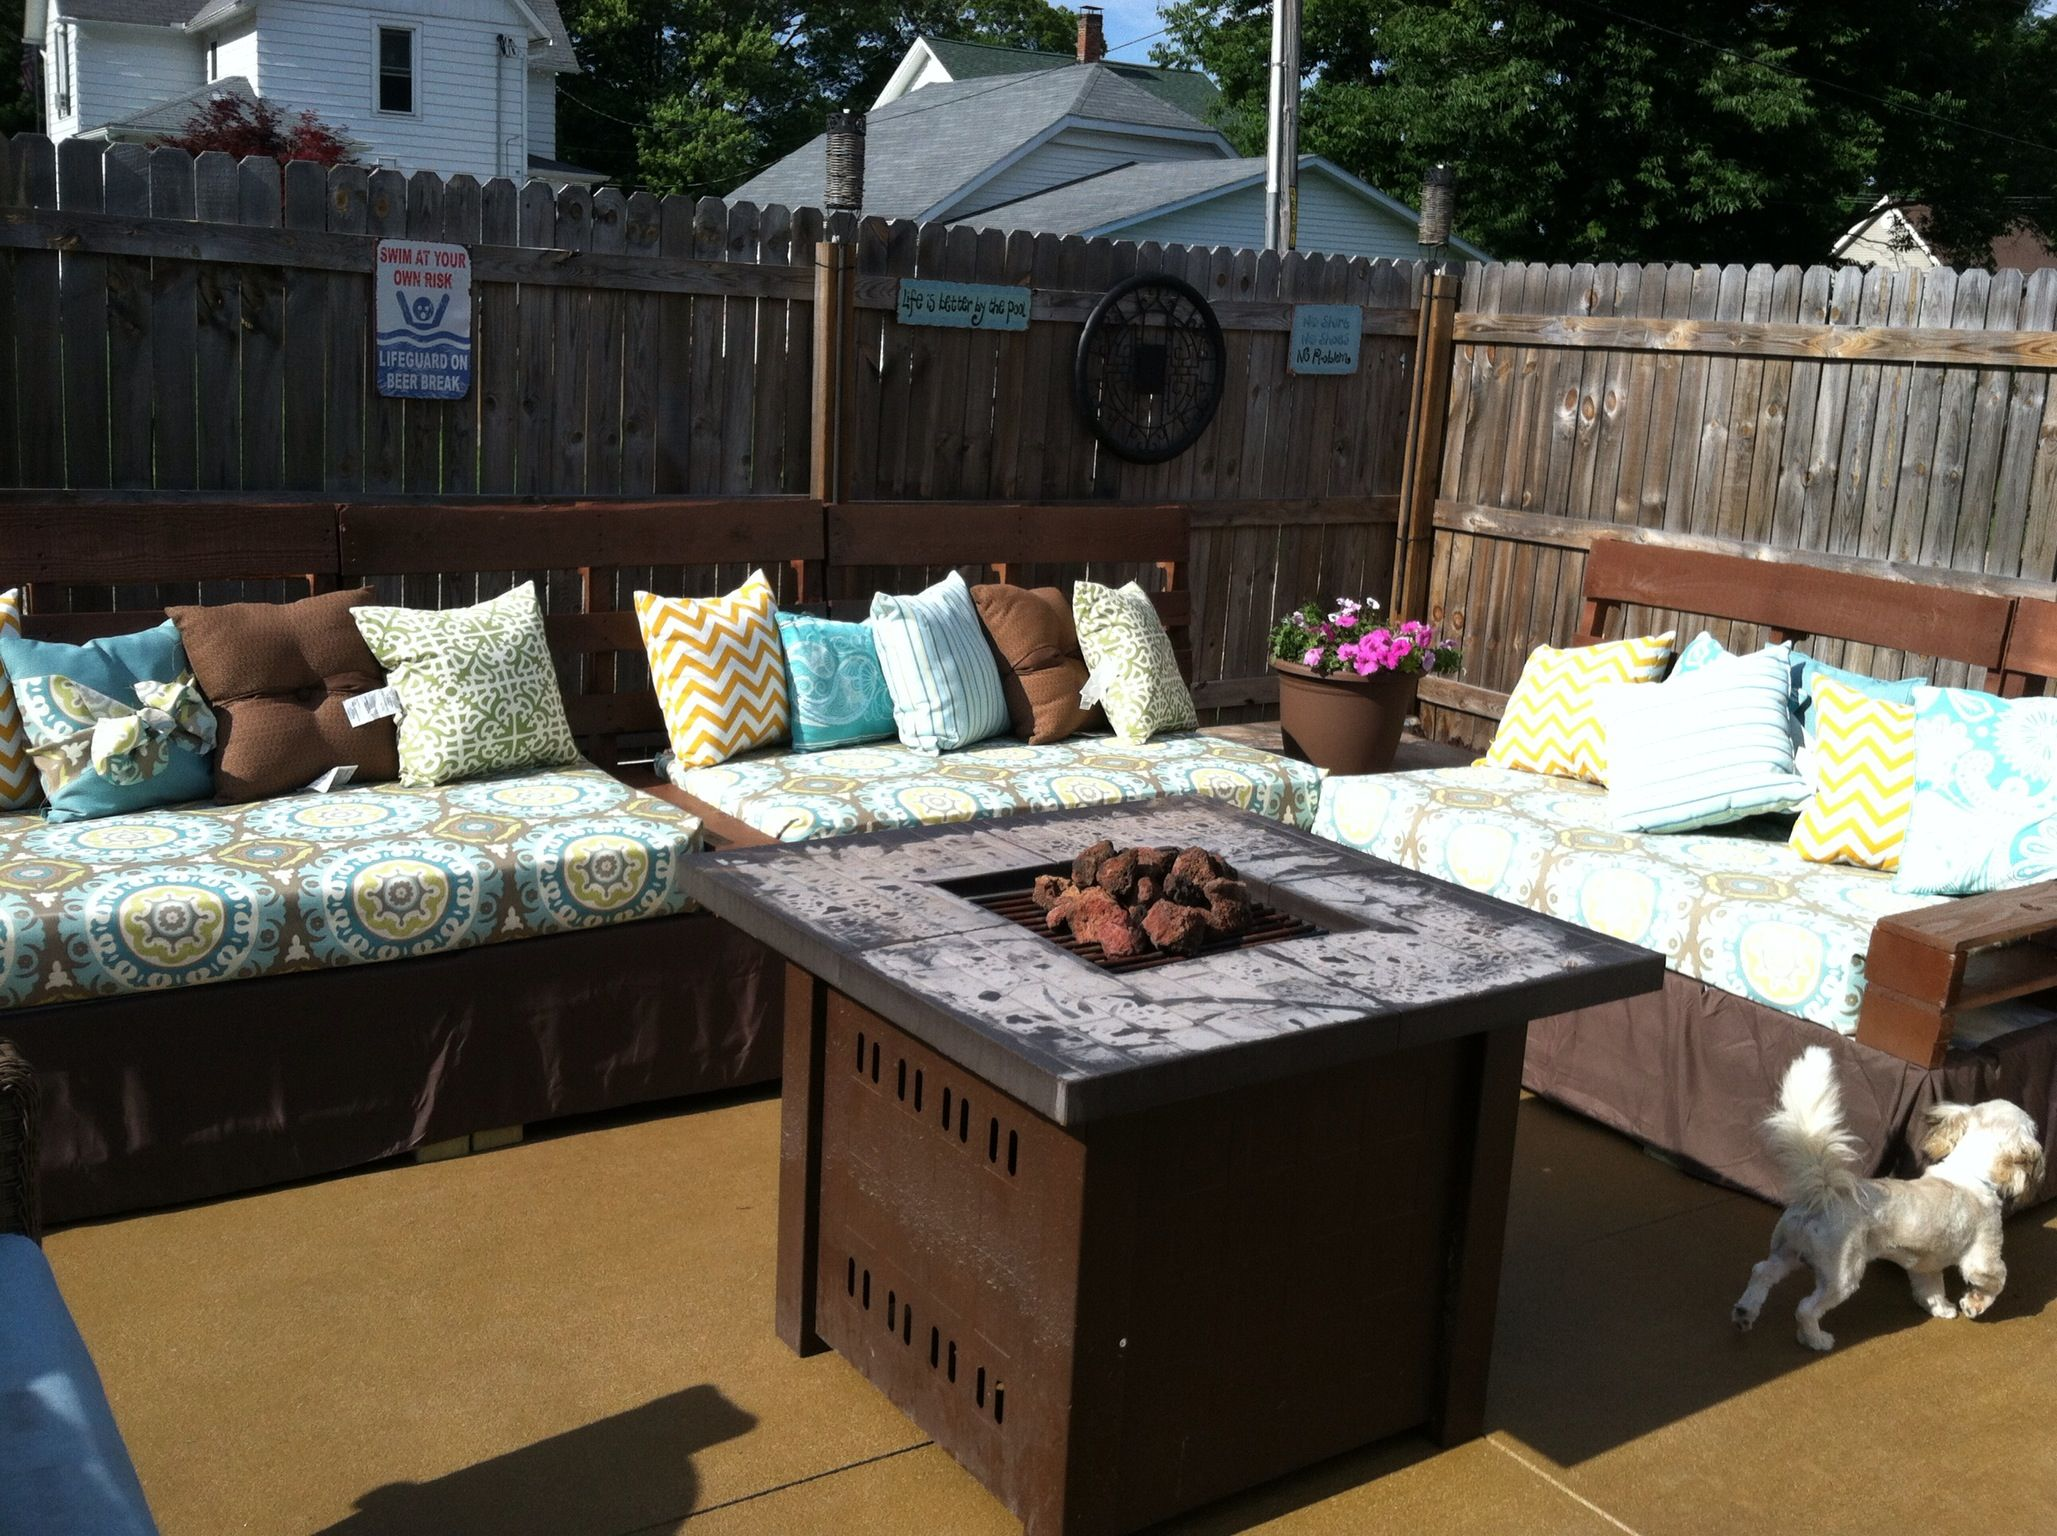 Pallet patio sectional - Our Pallet Sectional With Arm Rest And An End Table On The Side We Used